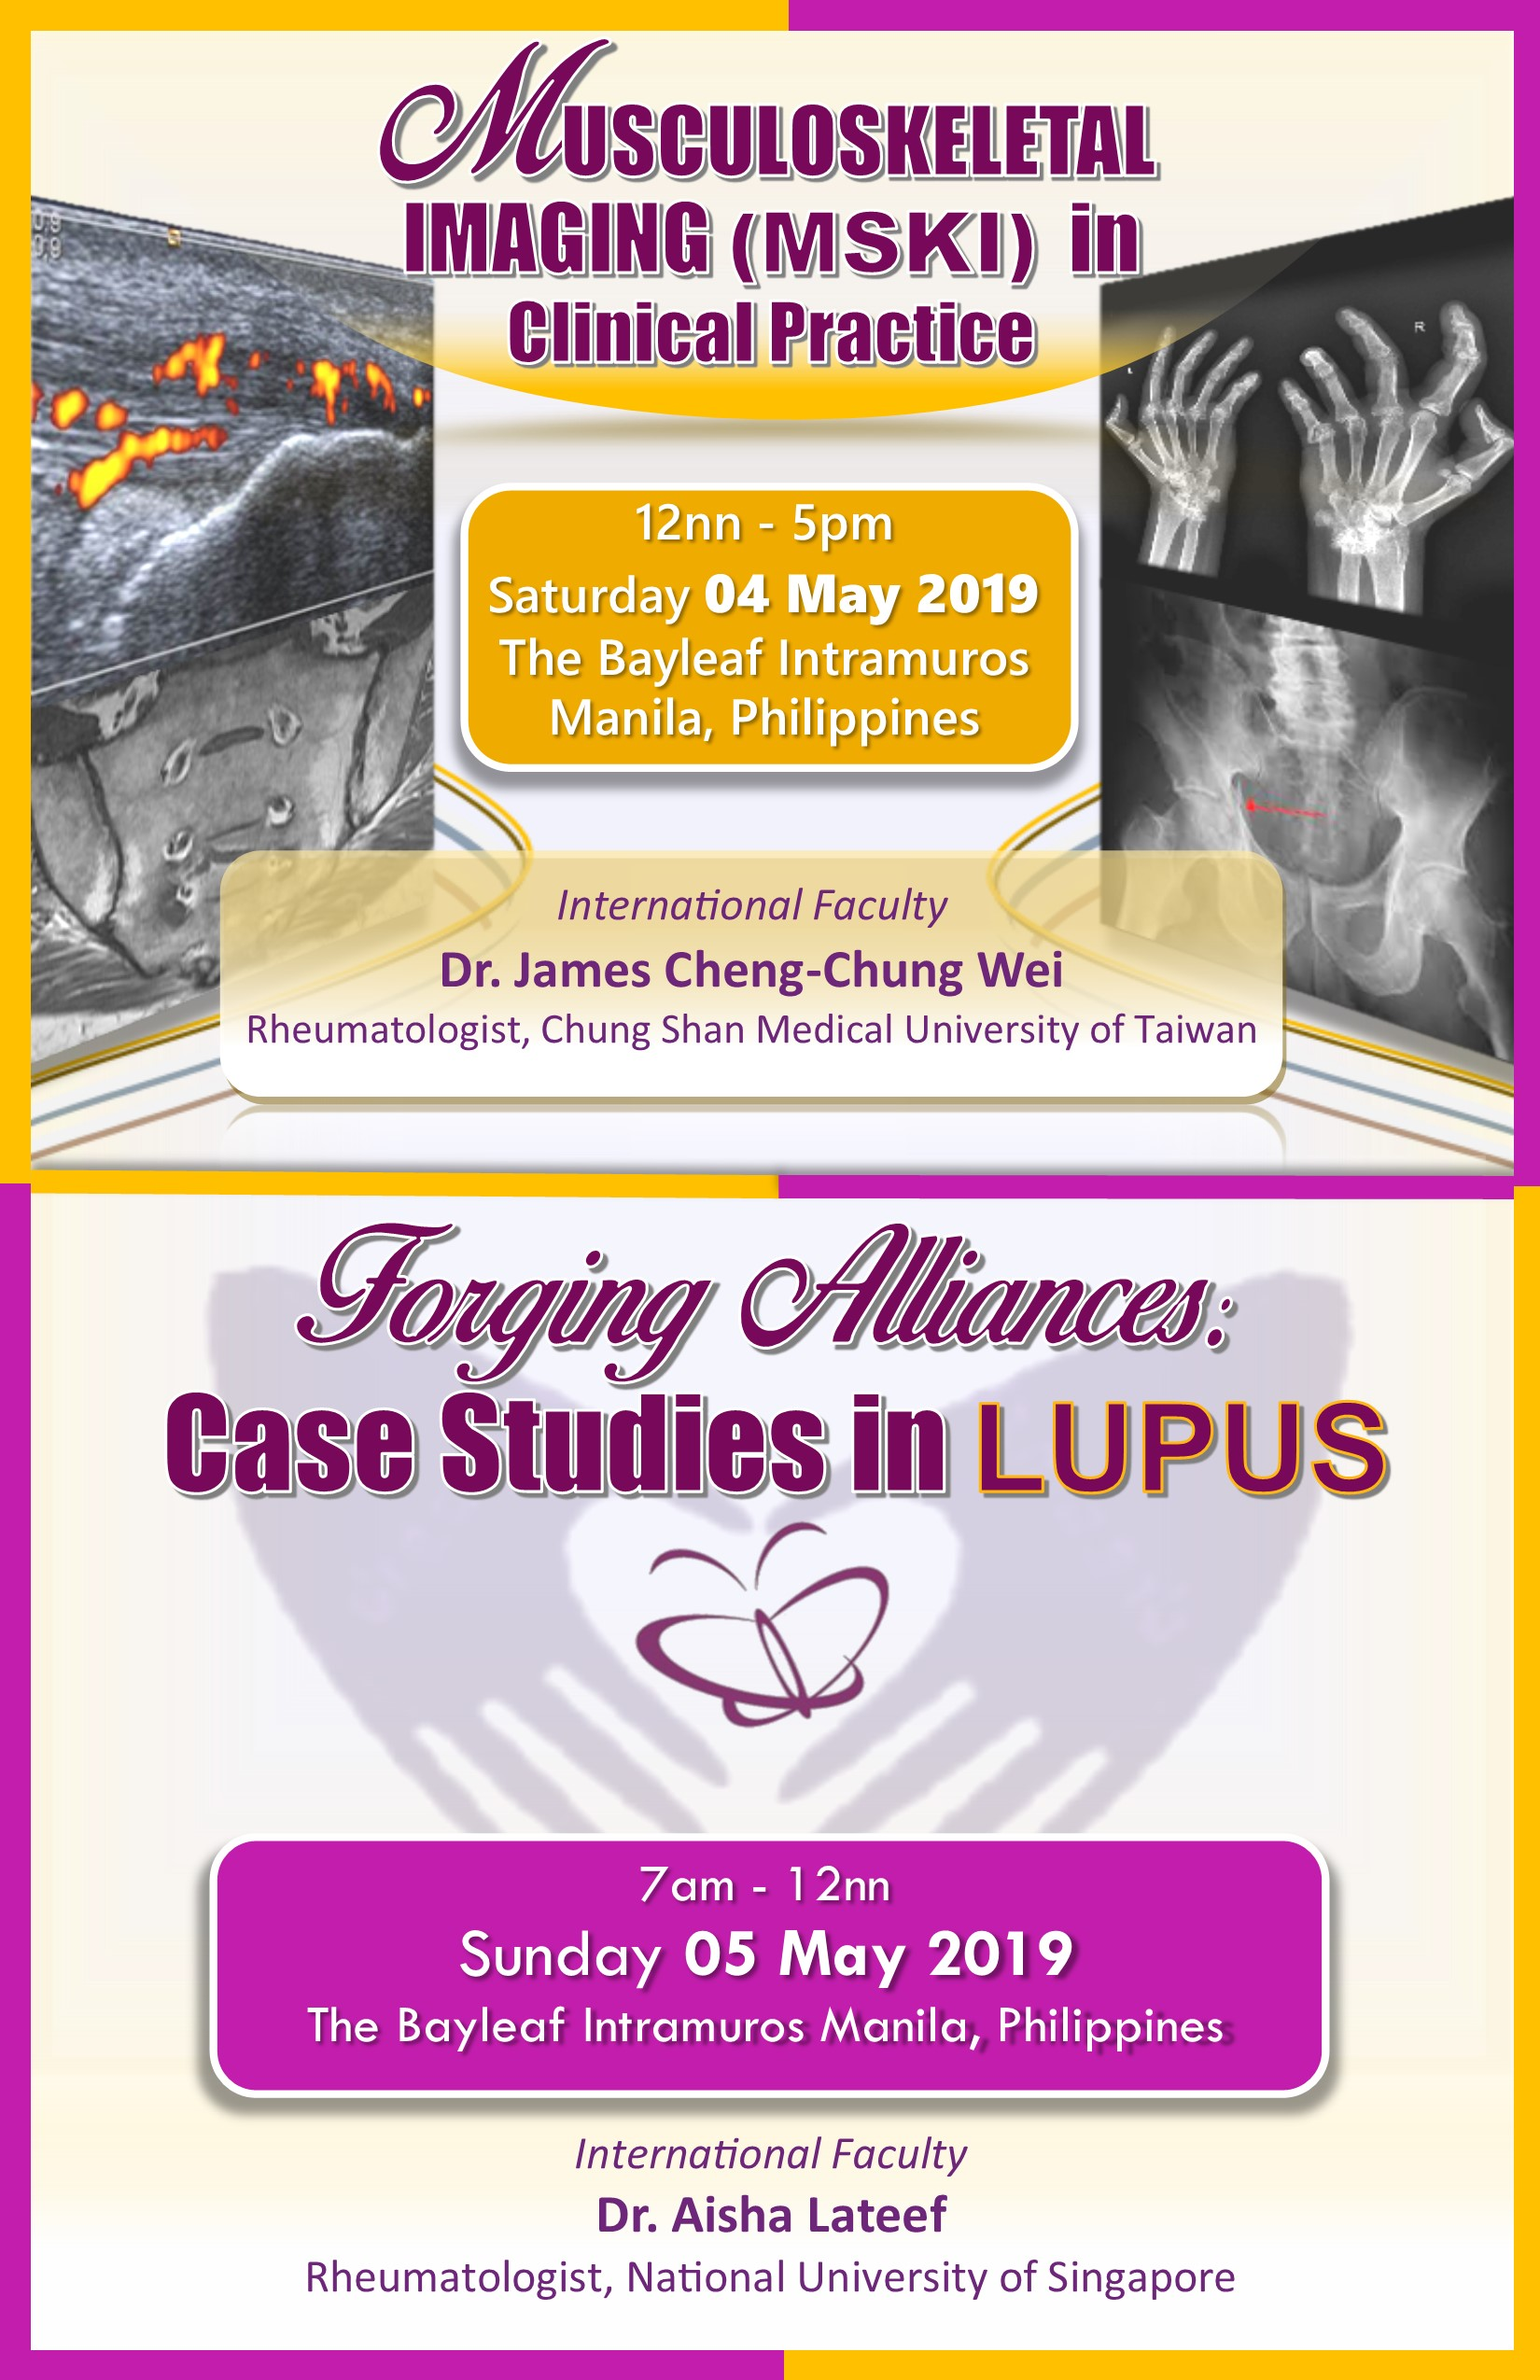 MSKI in Clinical Practice / Forging Alliances in LUPUS 2019